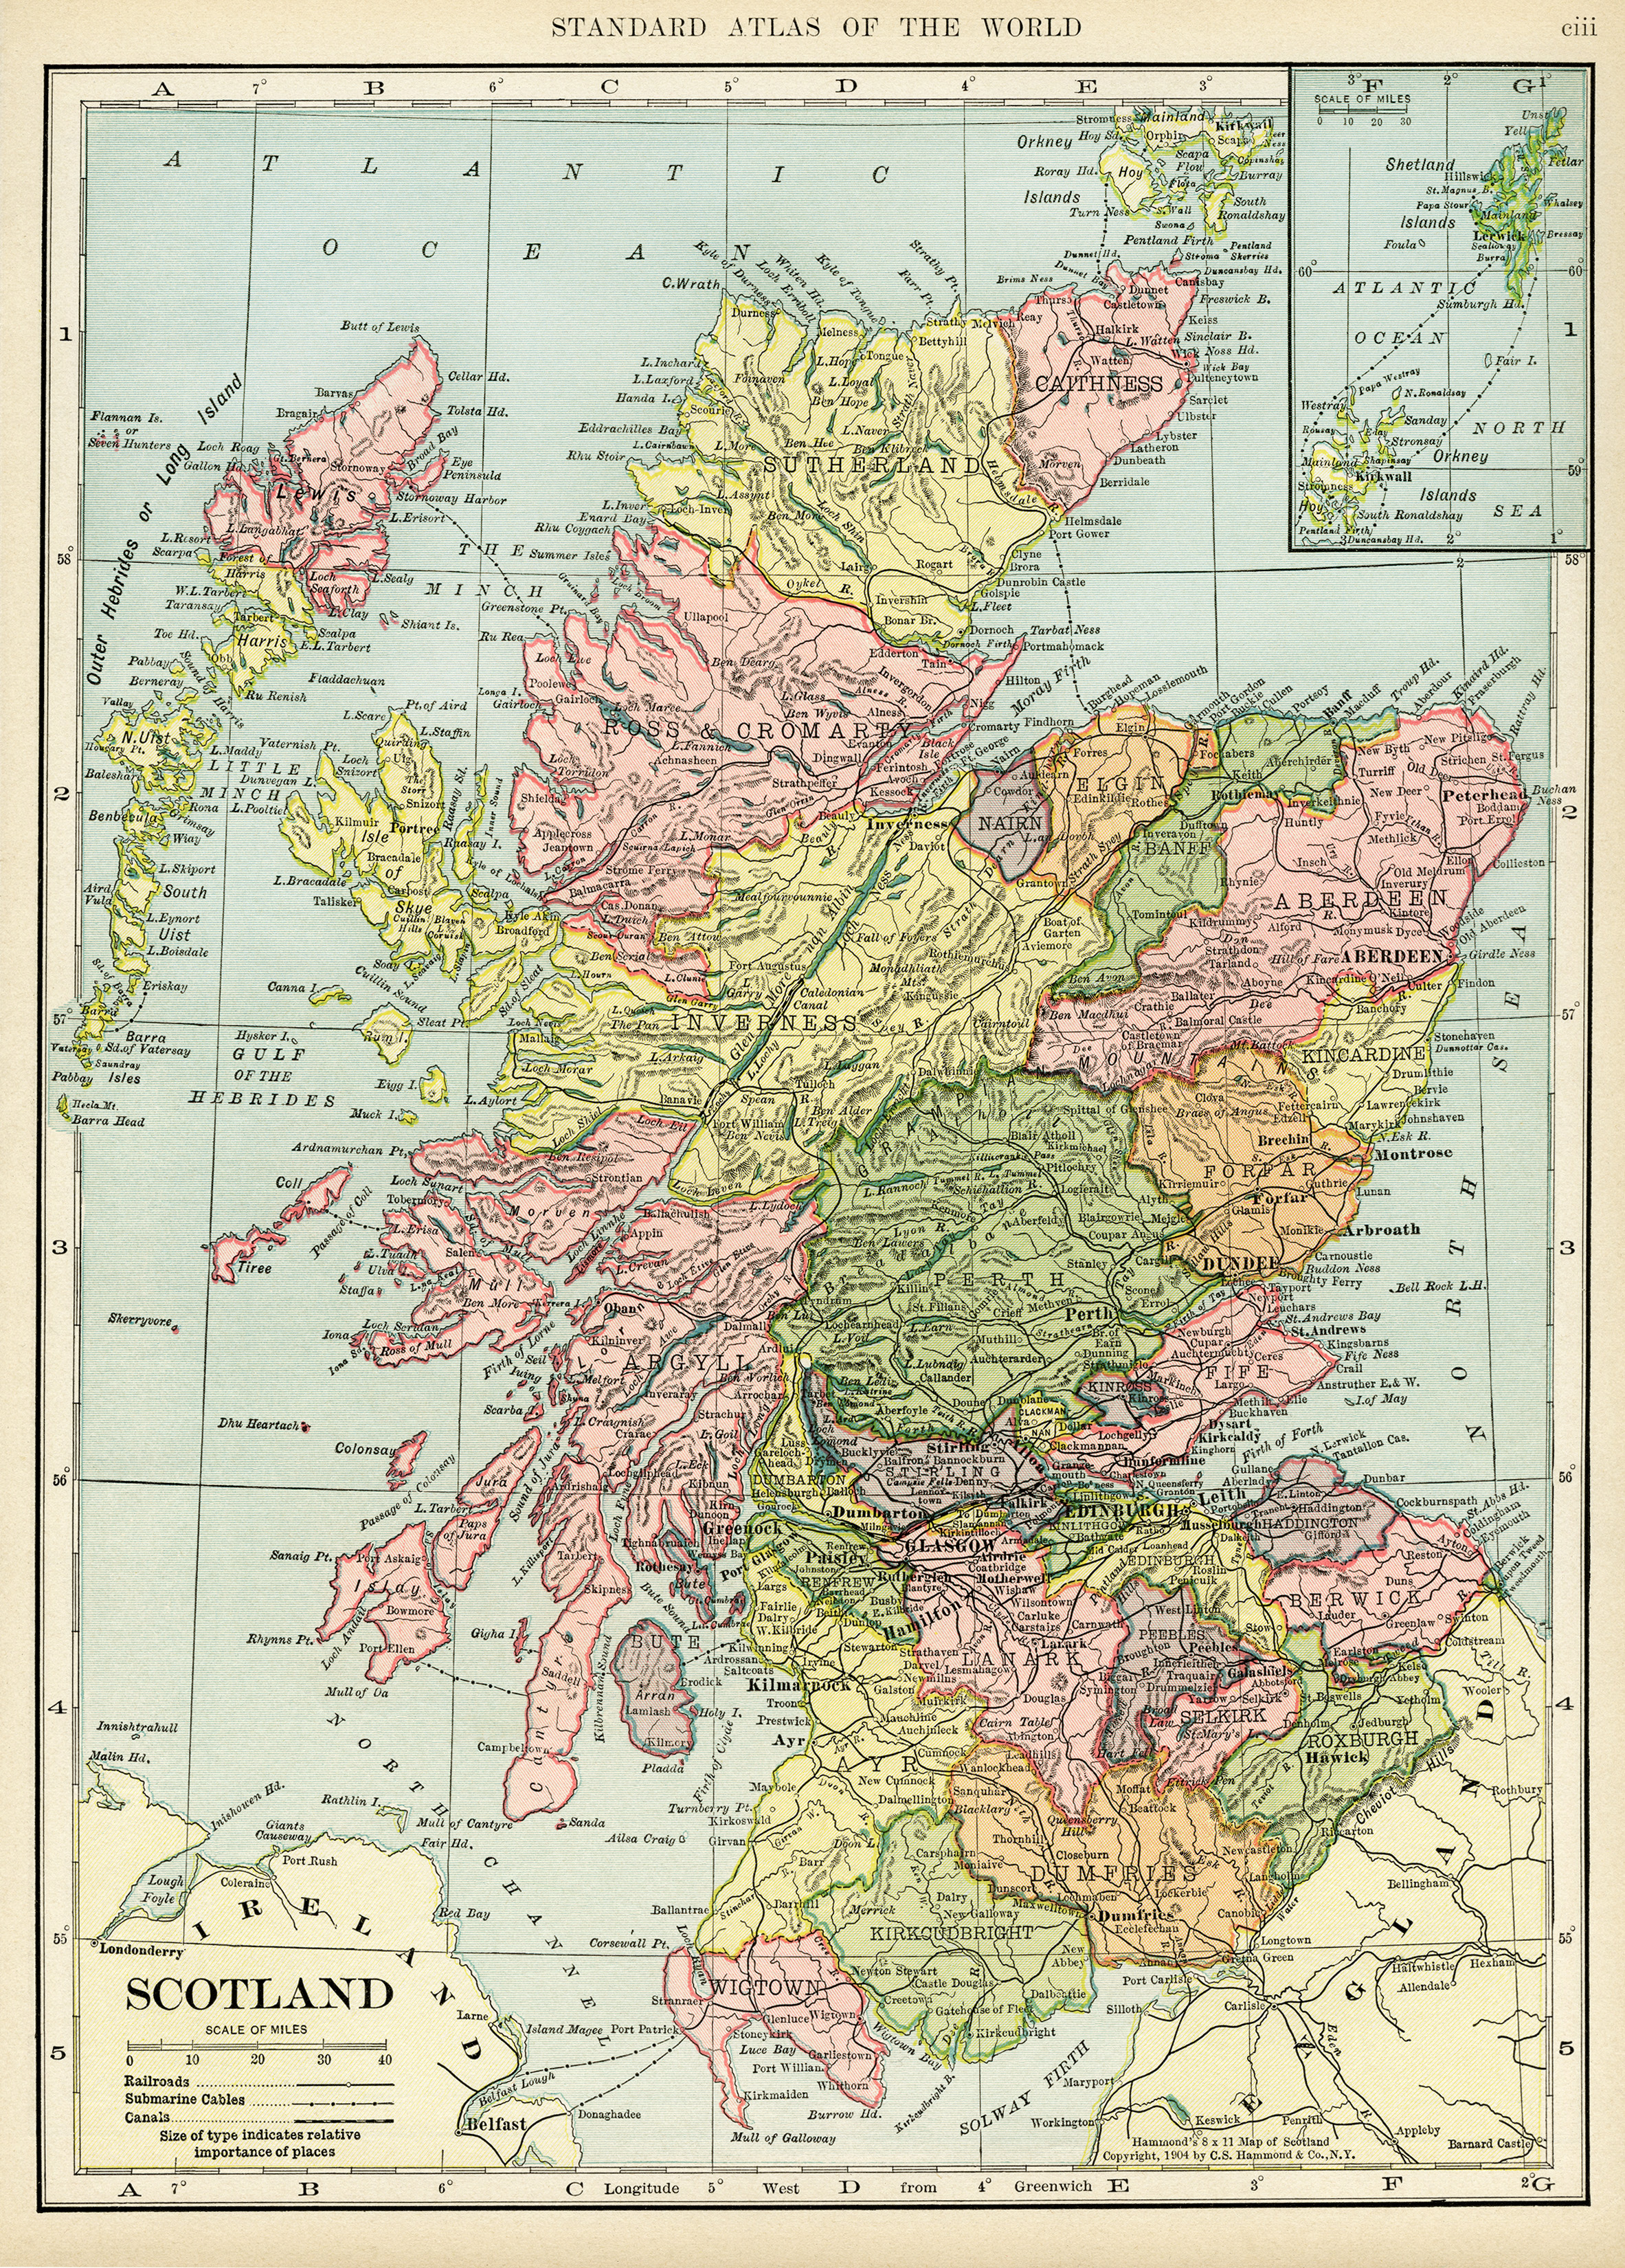 antique map of scotland with Map Of Scotland Free Vintage Image on Womens Restroom Sign besides British isles likewise Stock Photography Old Map Northen Sea Image11431112 also Maps besides Clipart Schein Treasure Map.